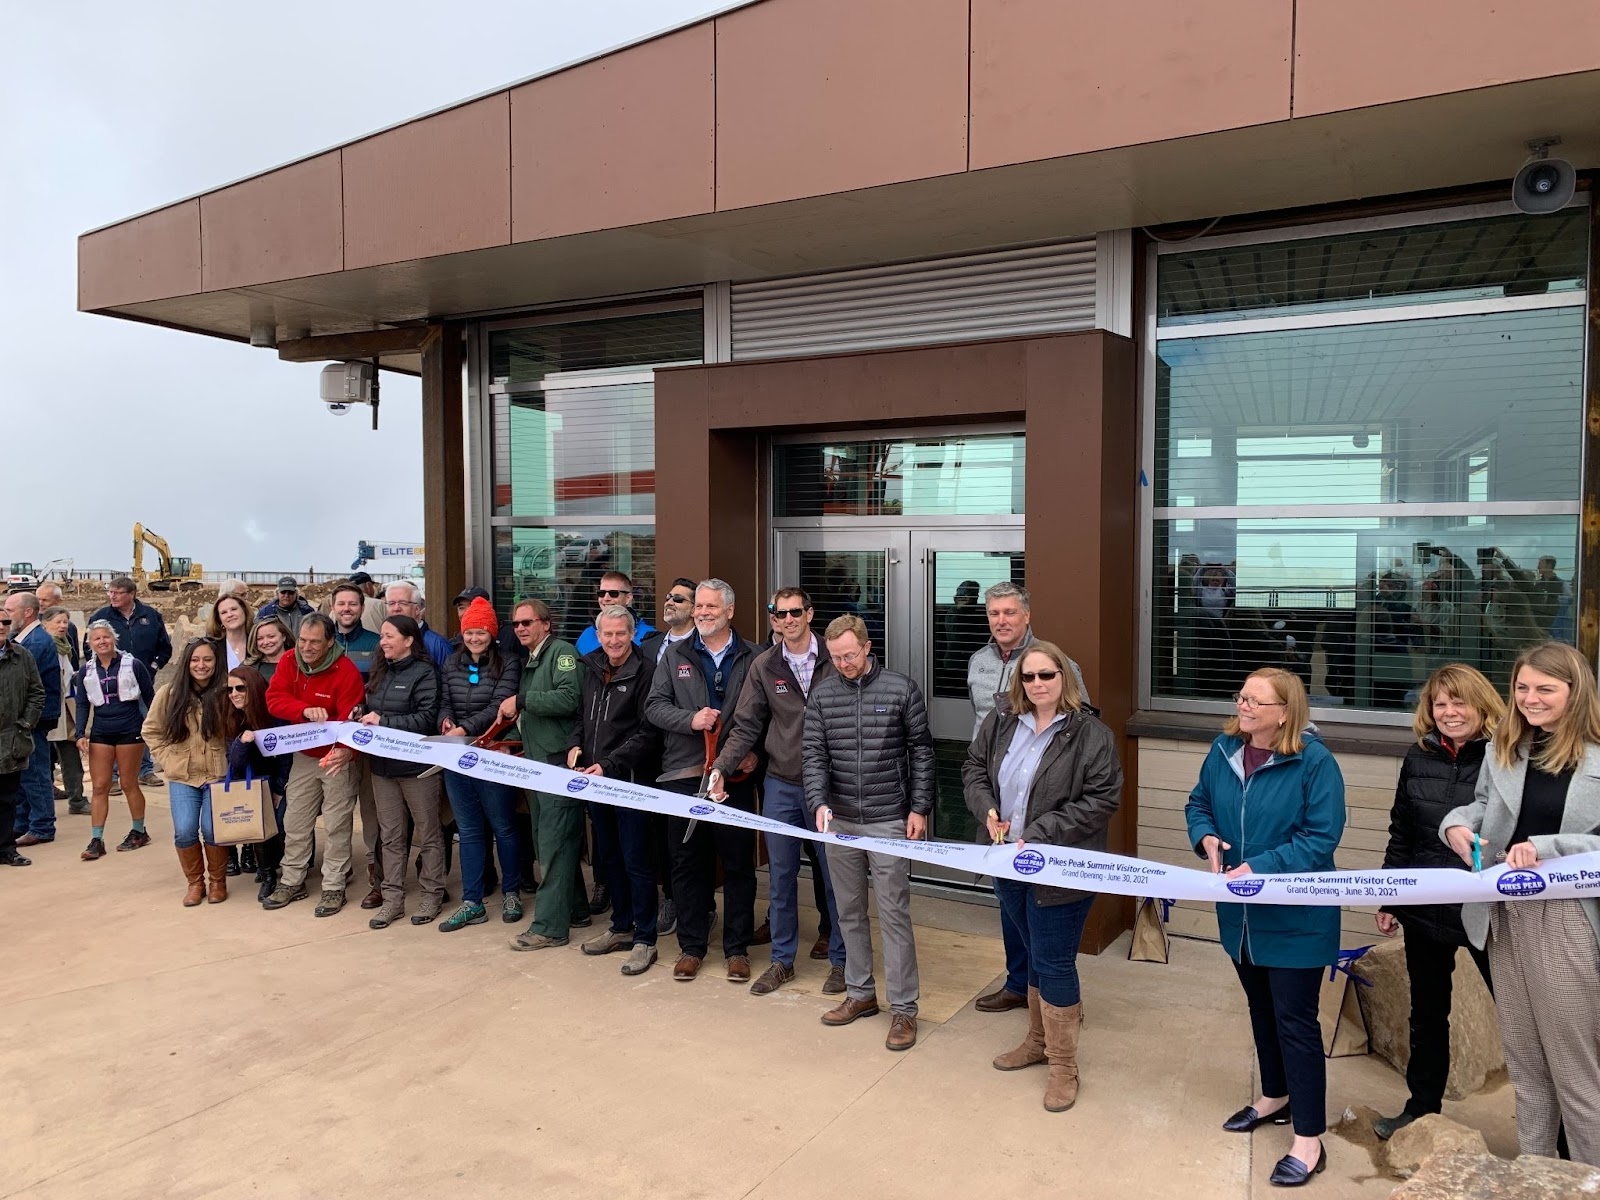 Ribbon cutting ceremony at Pikes peak Summit Complex's grand opening